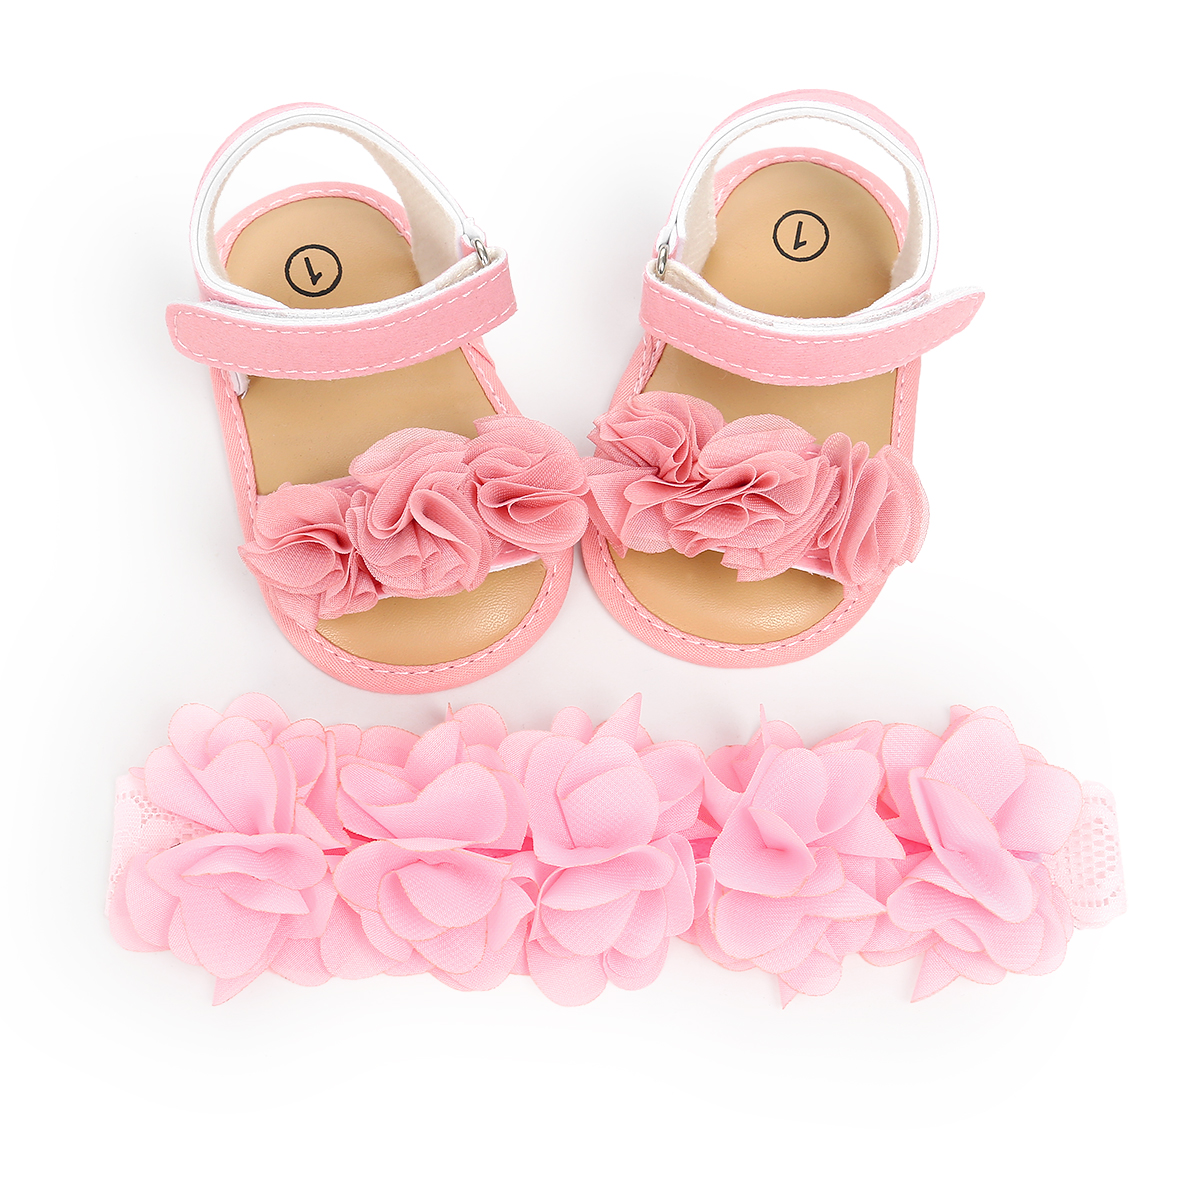 2020 Princess Cute Newborn Baby Girls Flower Sandals Summer Casual Soft Crib Shoes+Headbands 2pcs First Prewalker Beach Sandals